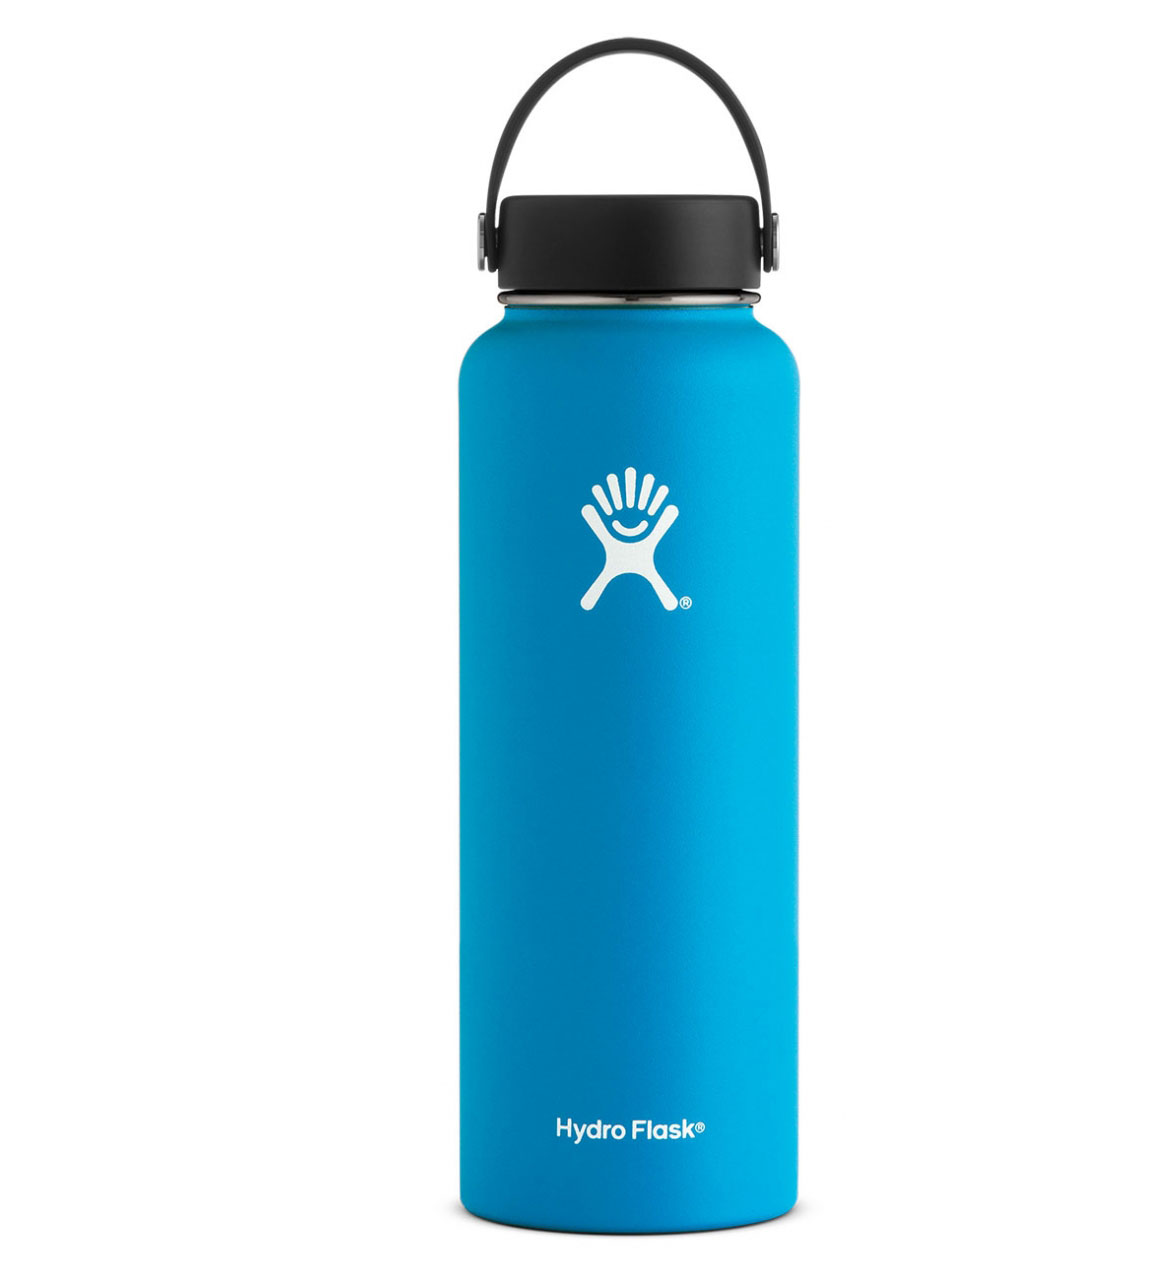 Hydro Flask Shop Now